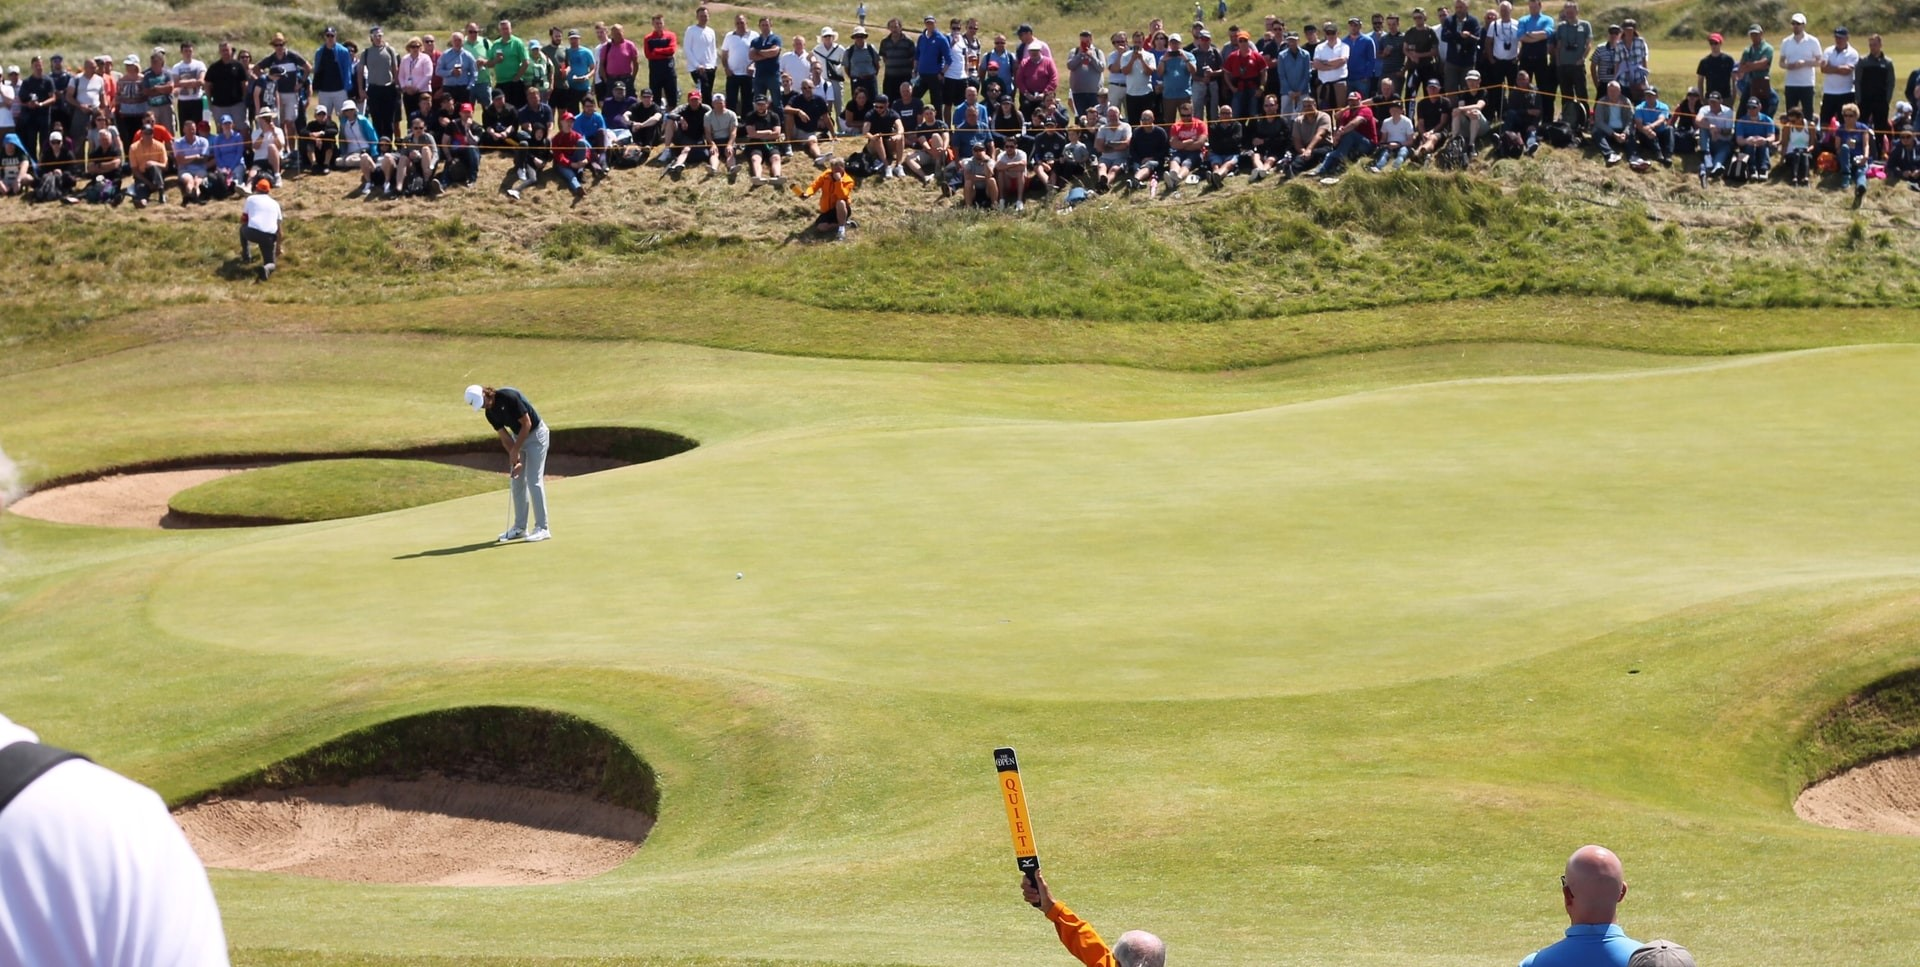 Royal Birkdale Golf Course at the 2017 Open